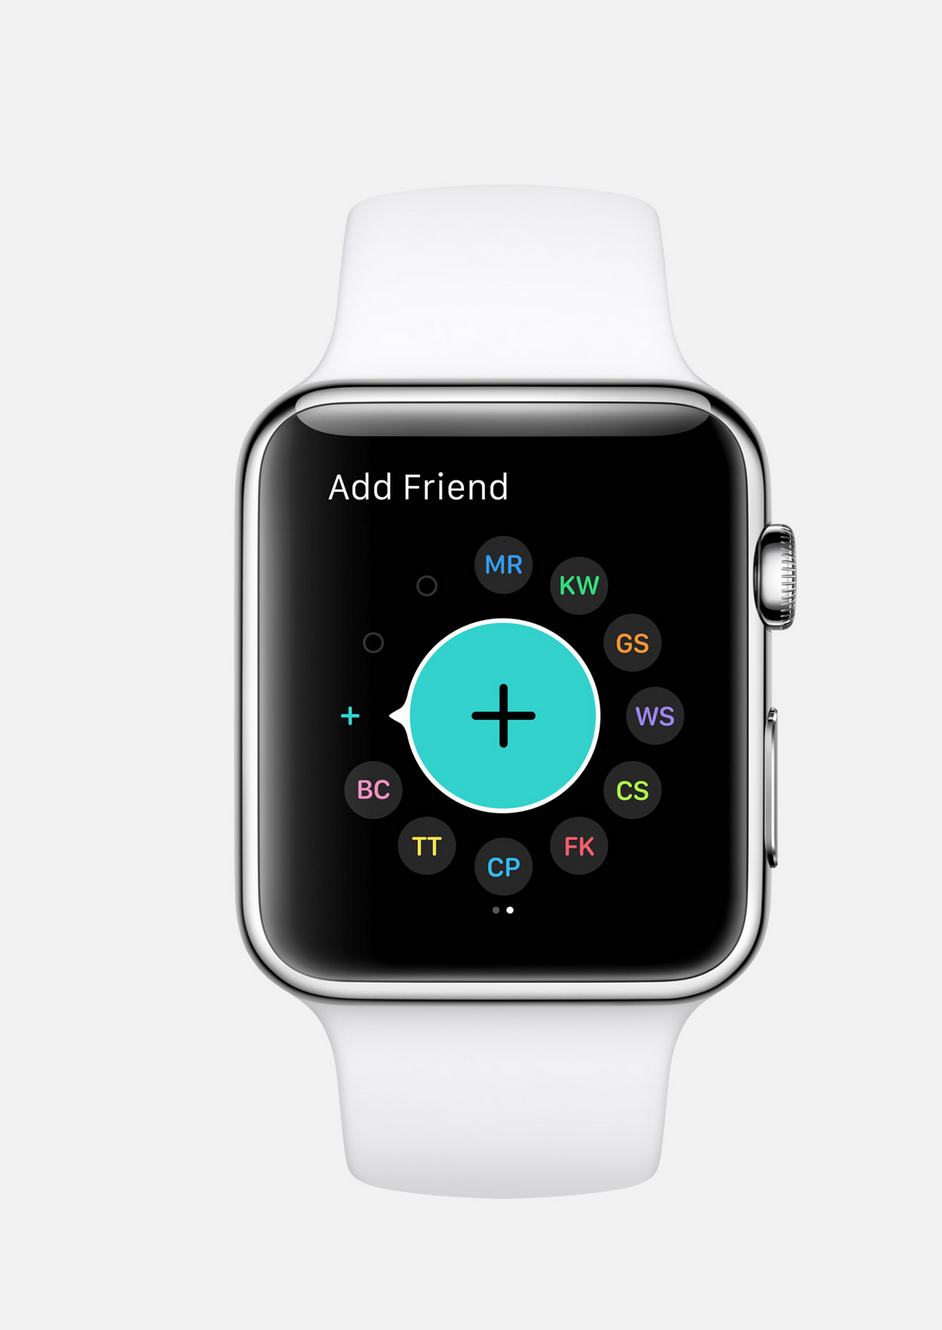 watchOS-2-flashfly-09-22 at 1.21.18 PM